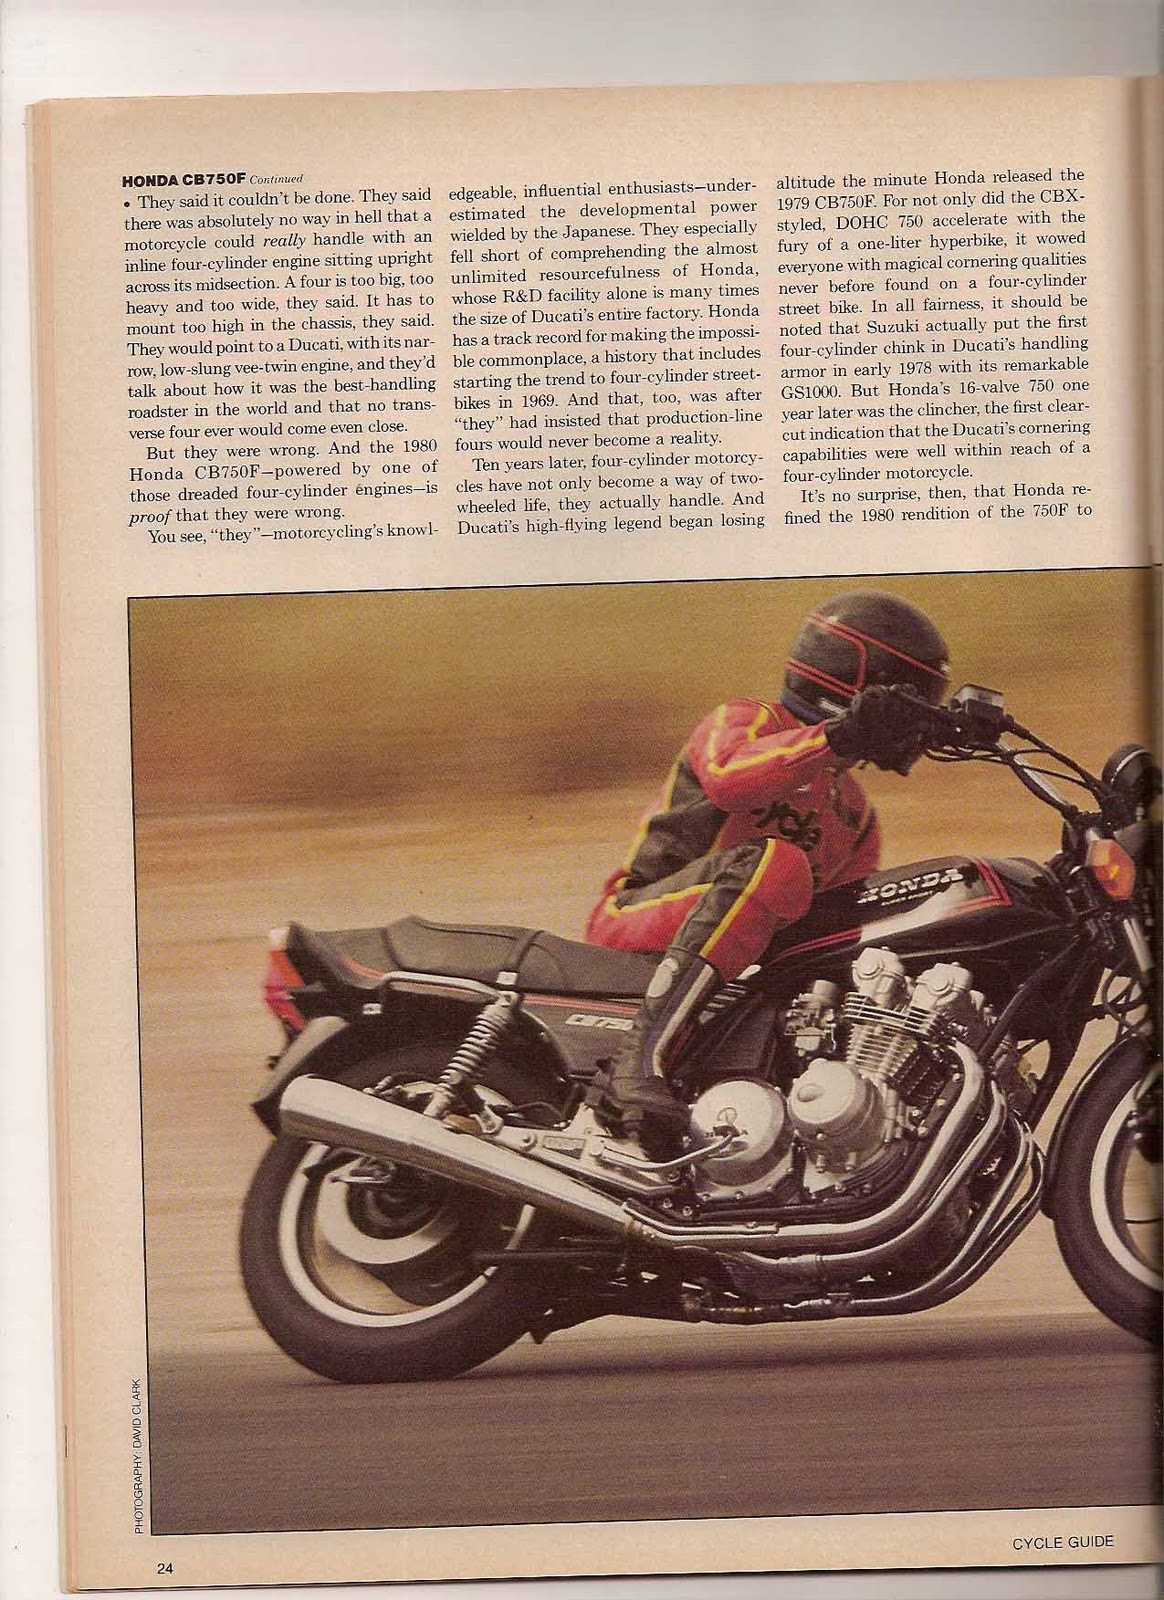 Cycle Guide Magazine  From The Cycle Guide Archives  The Day Honda